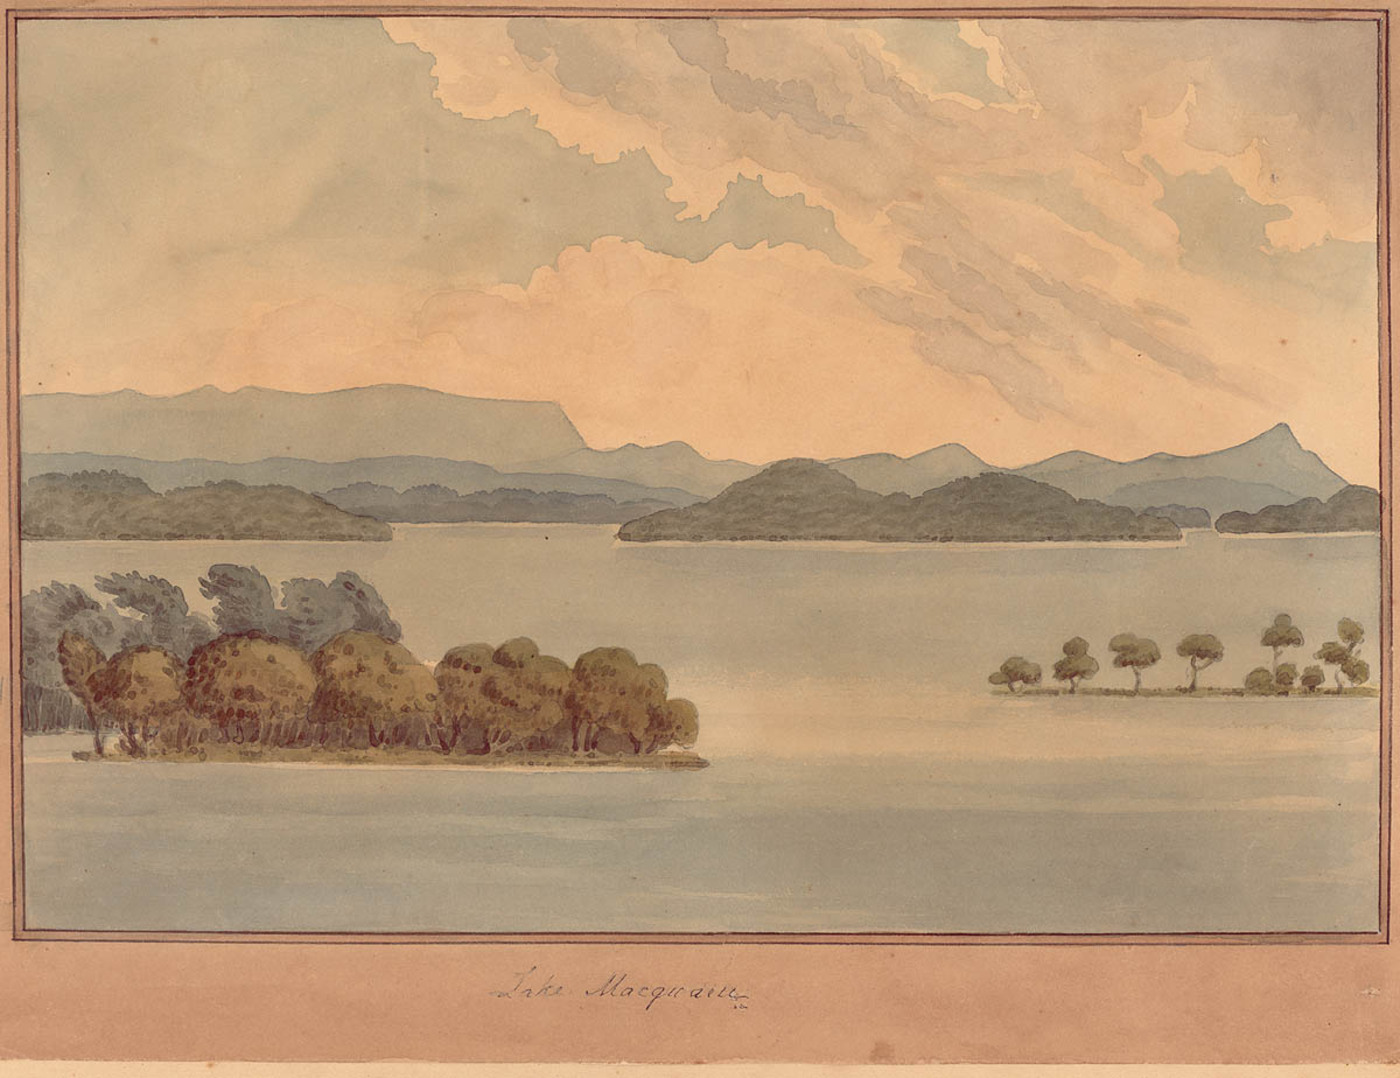 Lake Macquarie - watercolour by Edward Charles Close (1844) Courtesy of the State Library of NSW